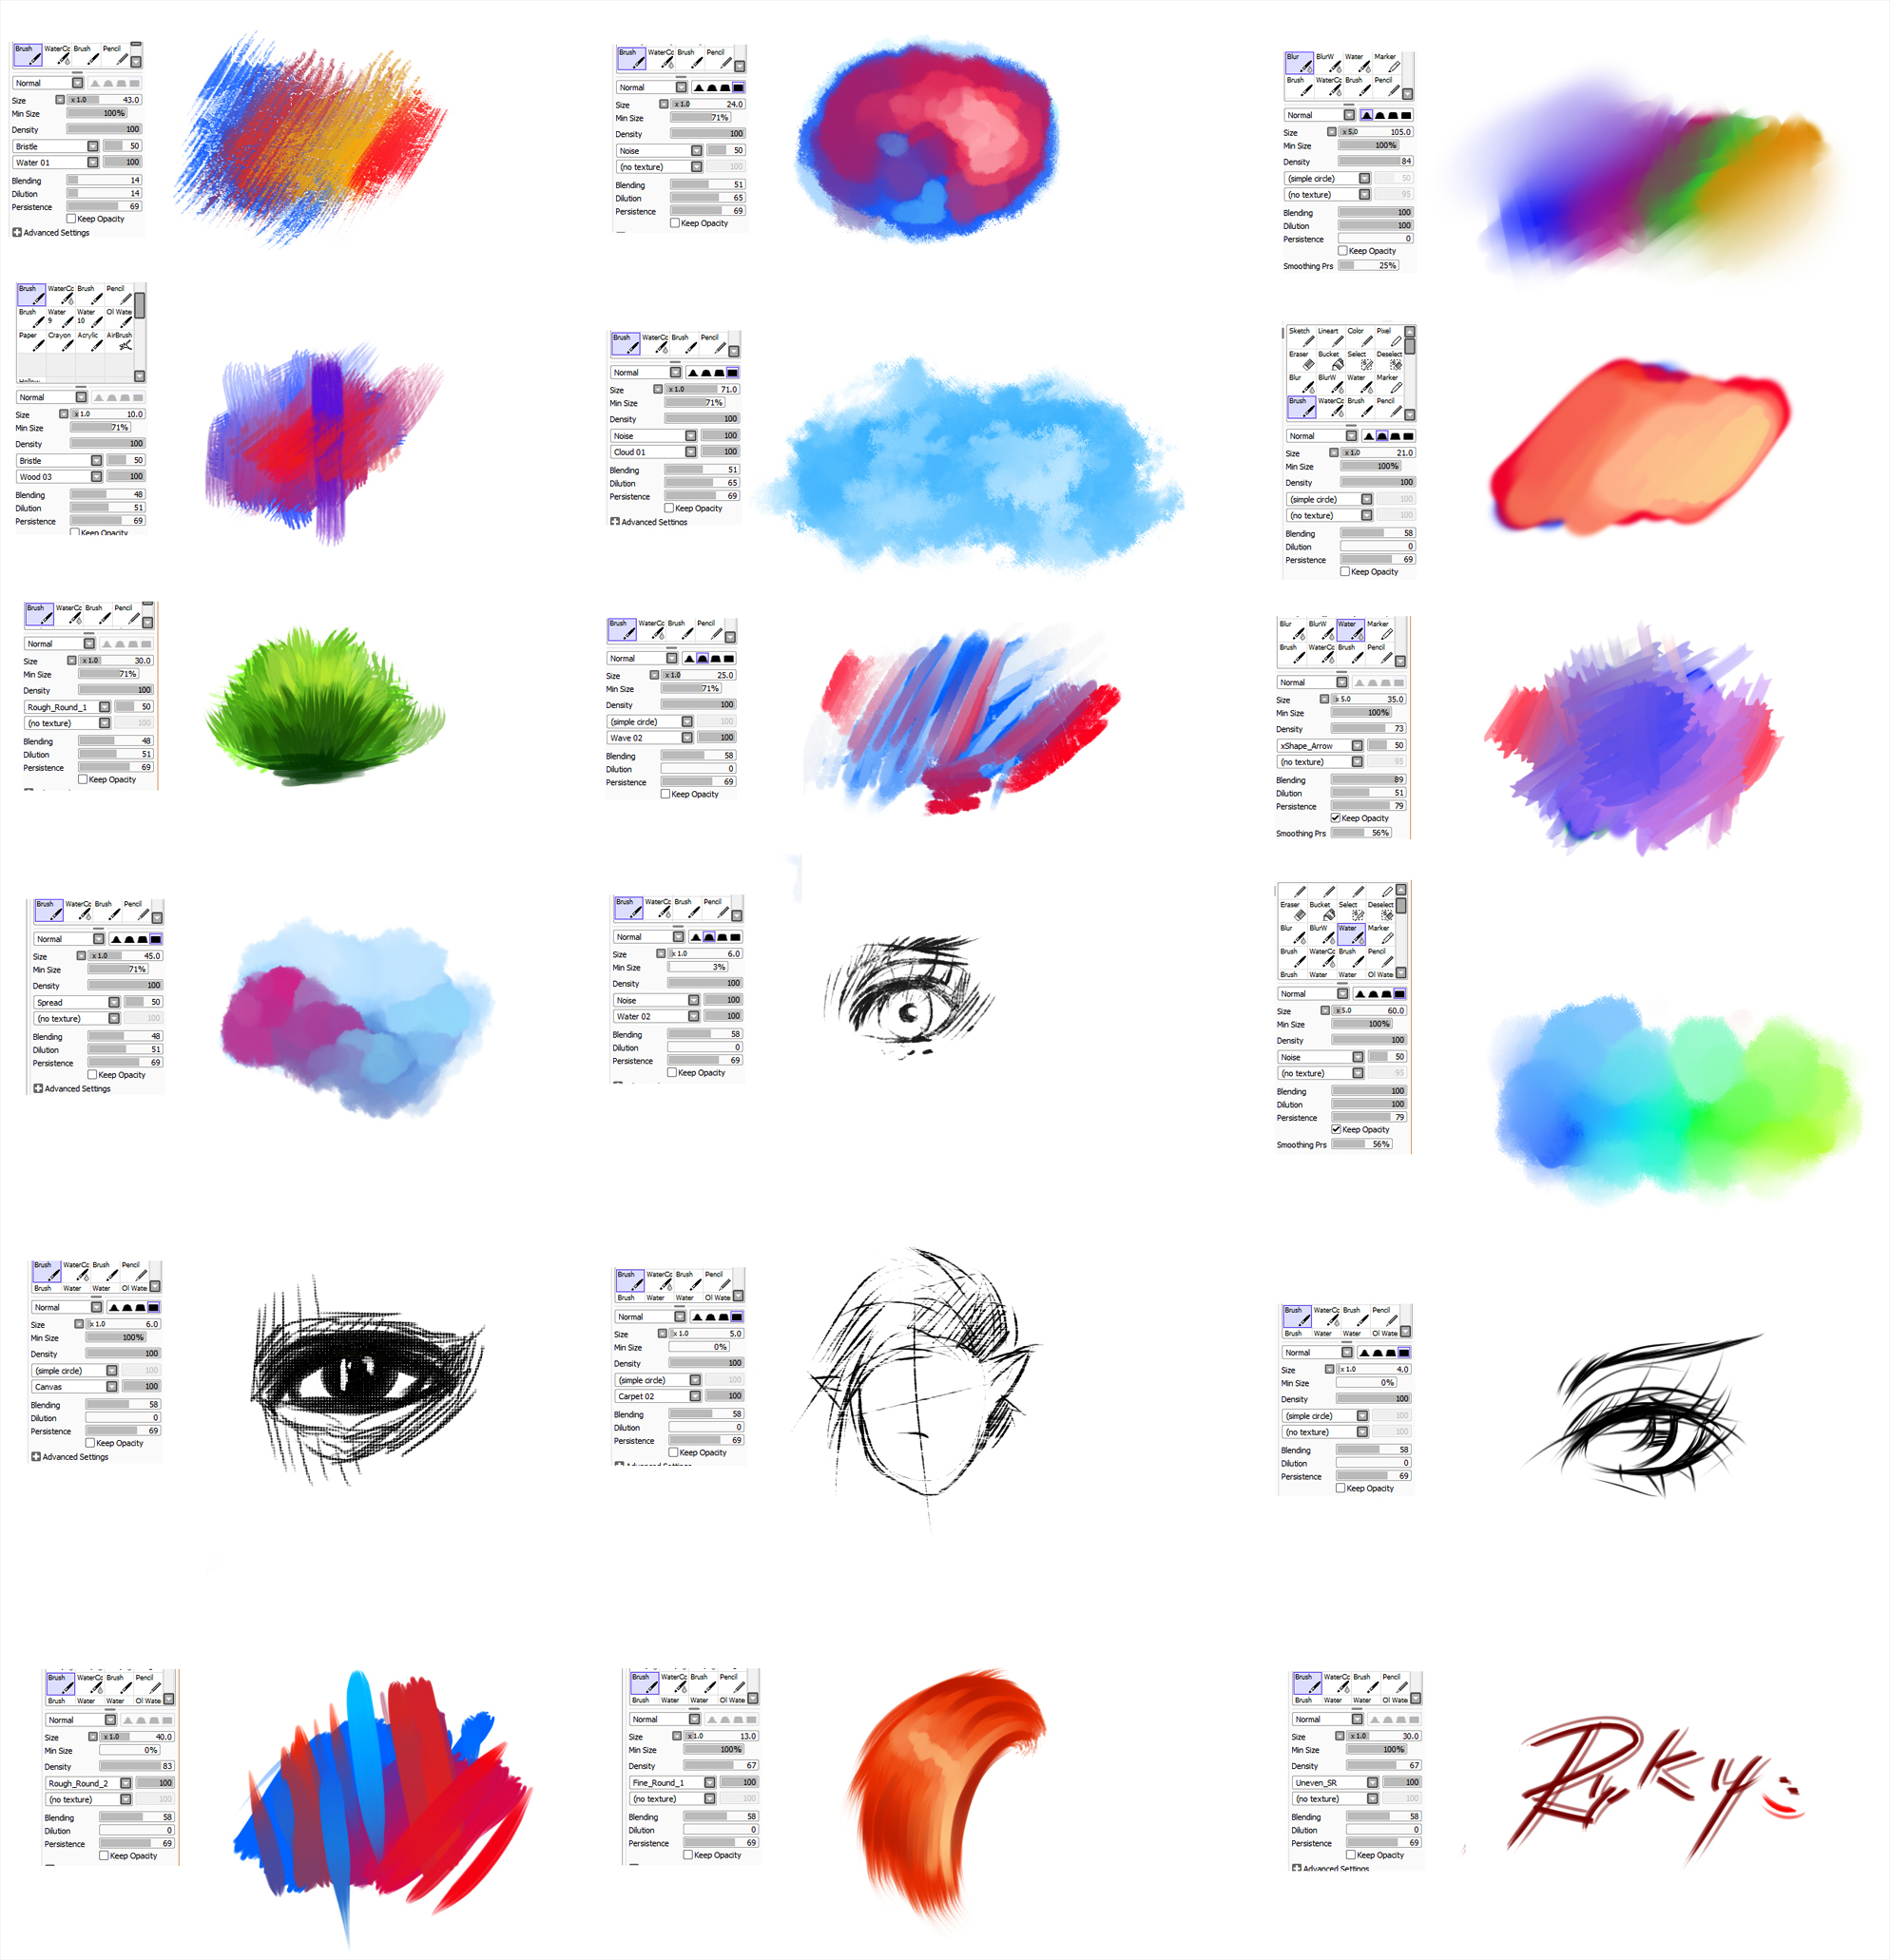 Brushes type for Paint tool SAI  2 by ryky. Brushes type for Paint tool SAI  2 by ryky on DeviantArt